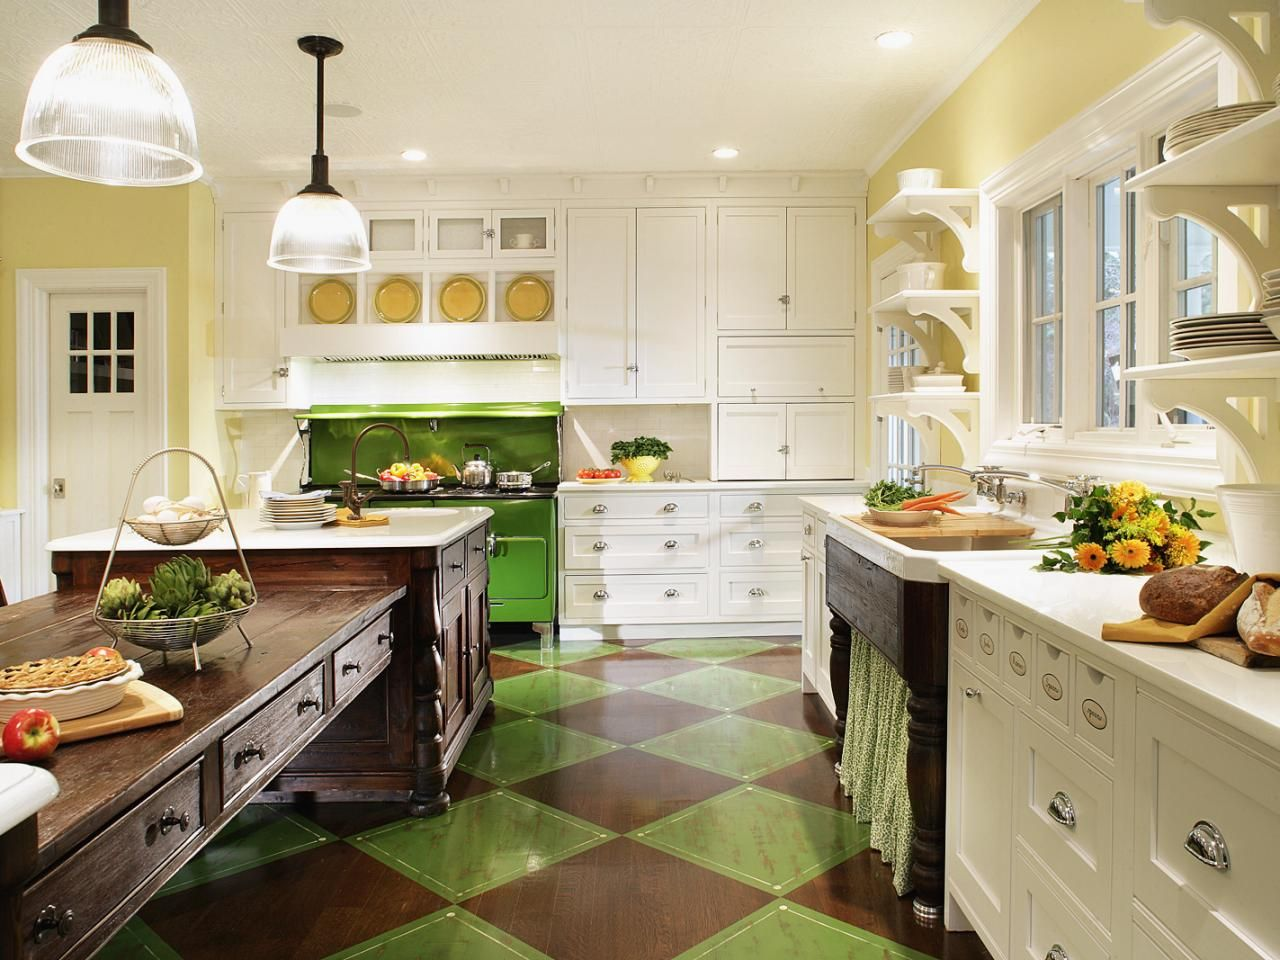 italian kitchen design pictures ideas u0026 tips from cooker